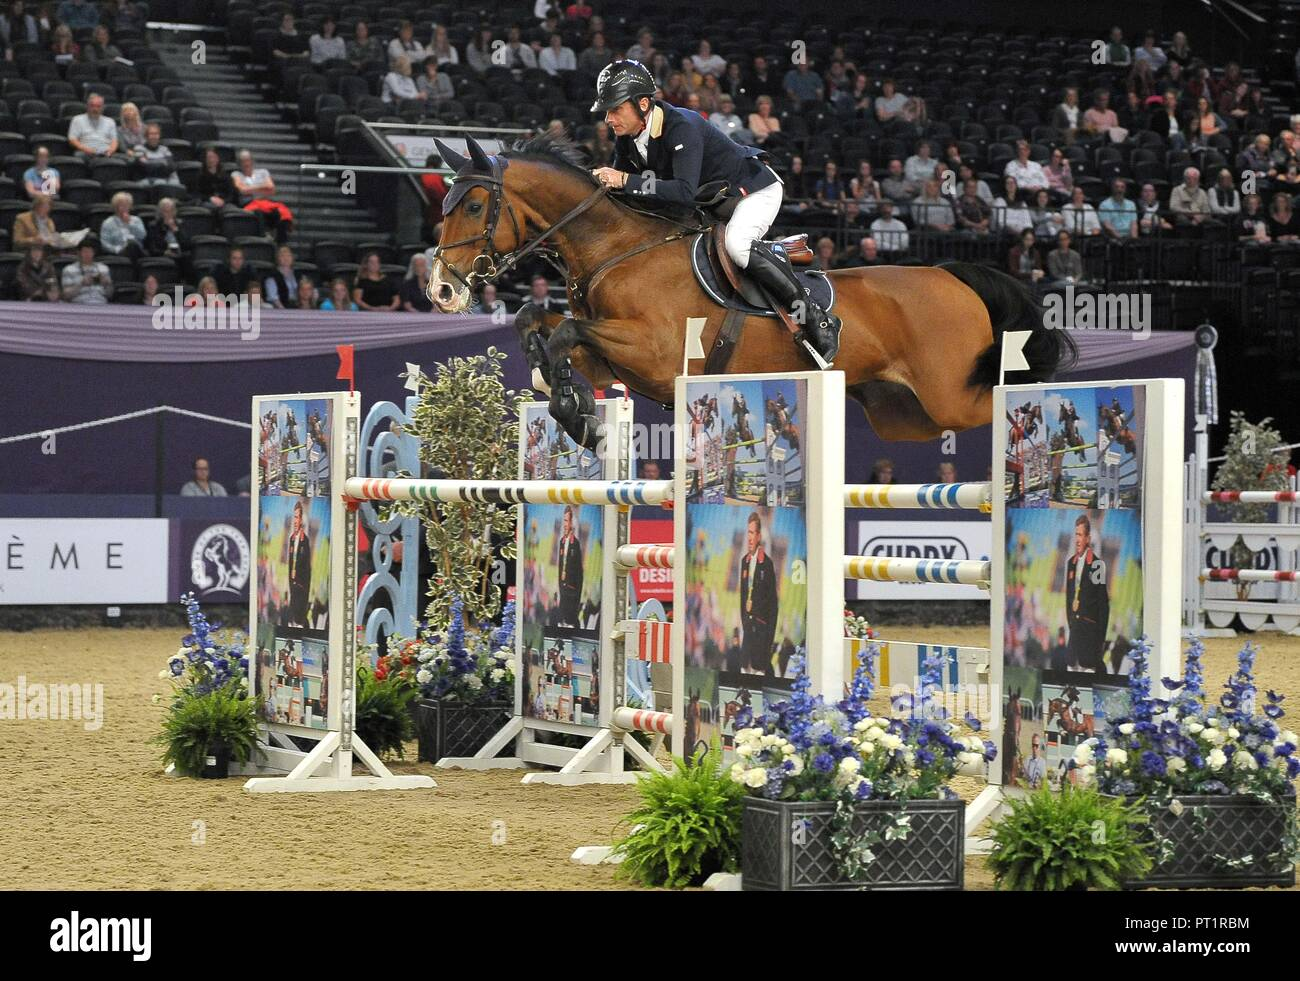 """Birmingham, UK. 5th October, 2018. Denis Lynch (IRL) riding """"Caruso"""". International showjumping. Grandstand welcome stakes. Horse of the year show (HOYS). National Exhibition Centre (NEC). Birmingham. UK. 05/10/2018. Credit: Sport In Pictures/Alamy Live News Stock Photo"""